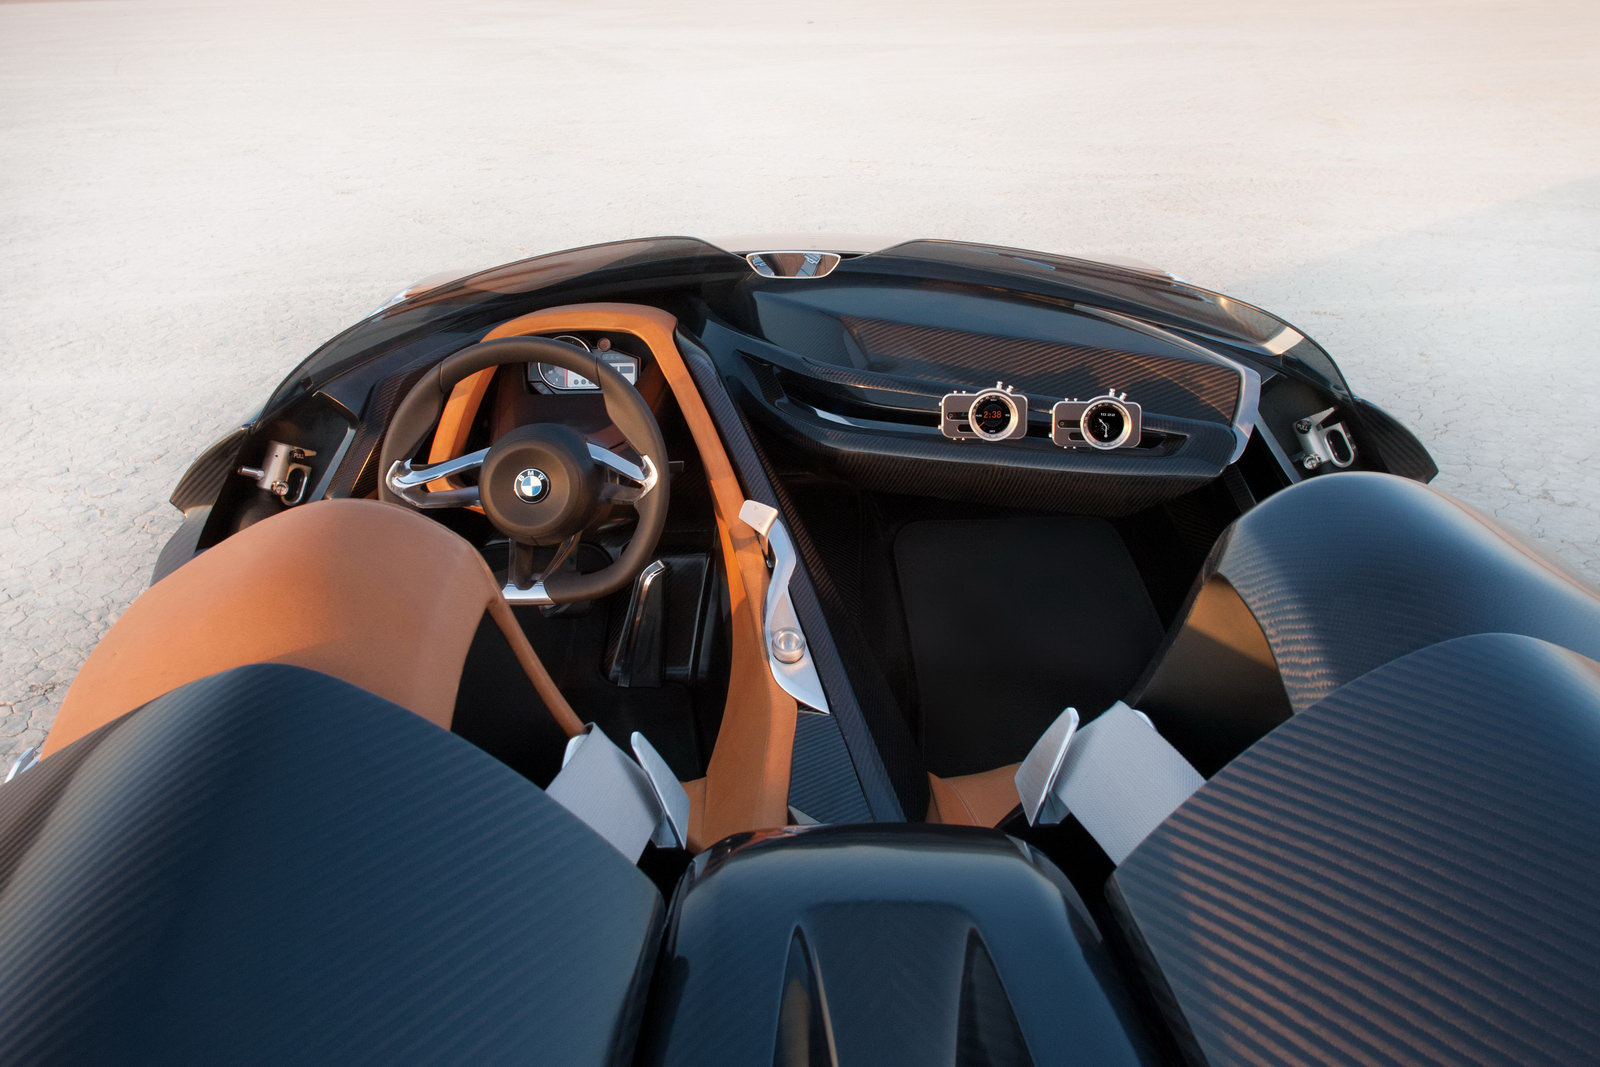 BMW 328 Hommage Concept 19 BMW's Retrolicious 328 Homage Concept Car to Launch Soon